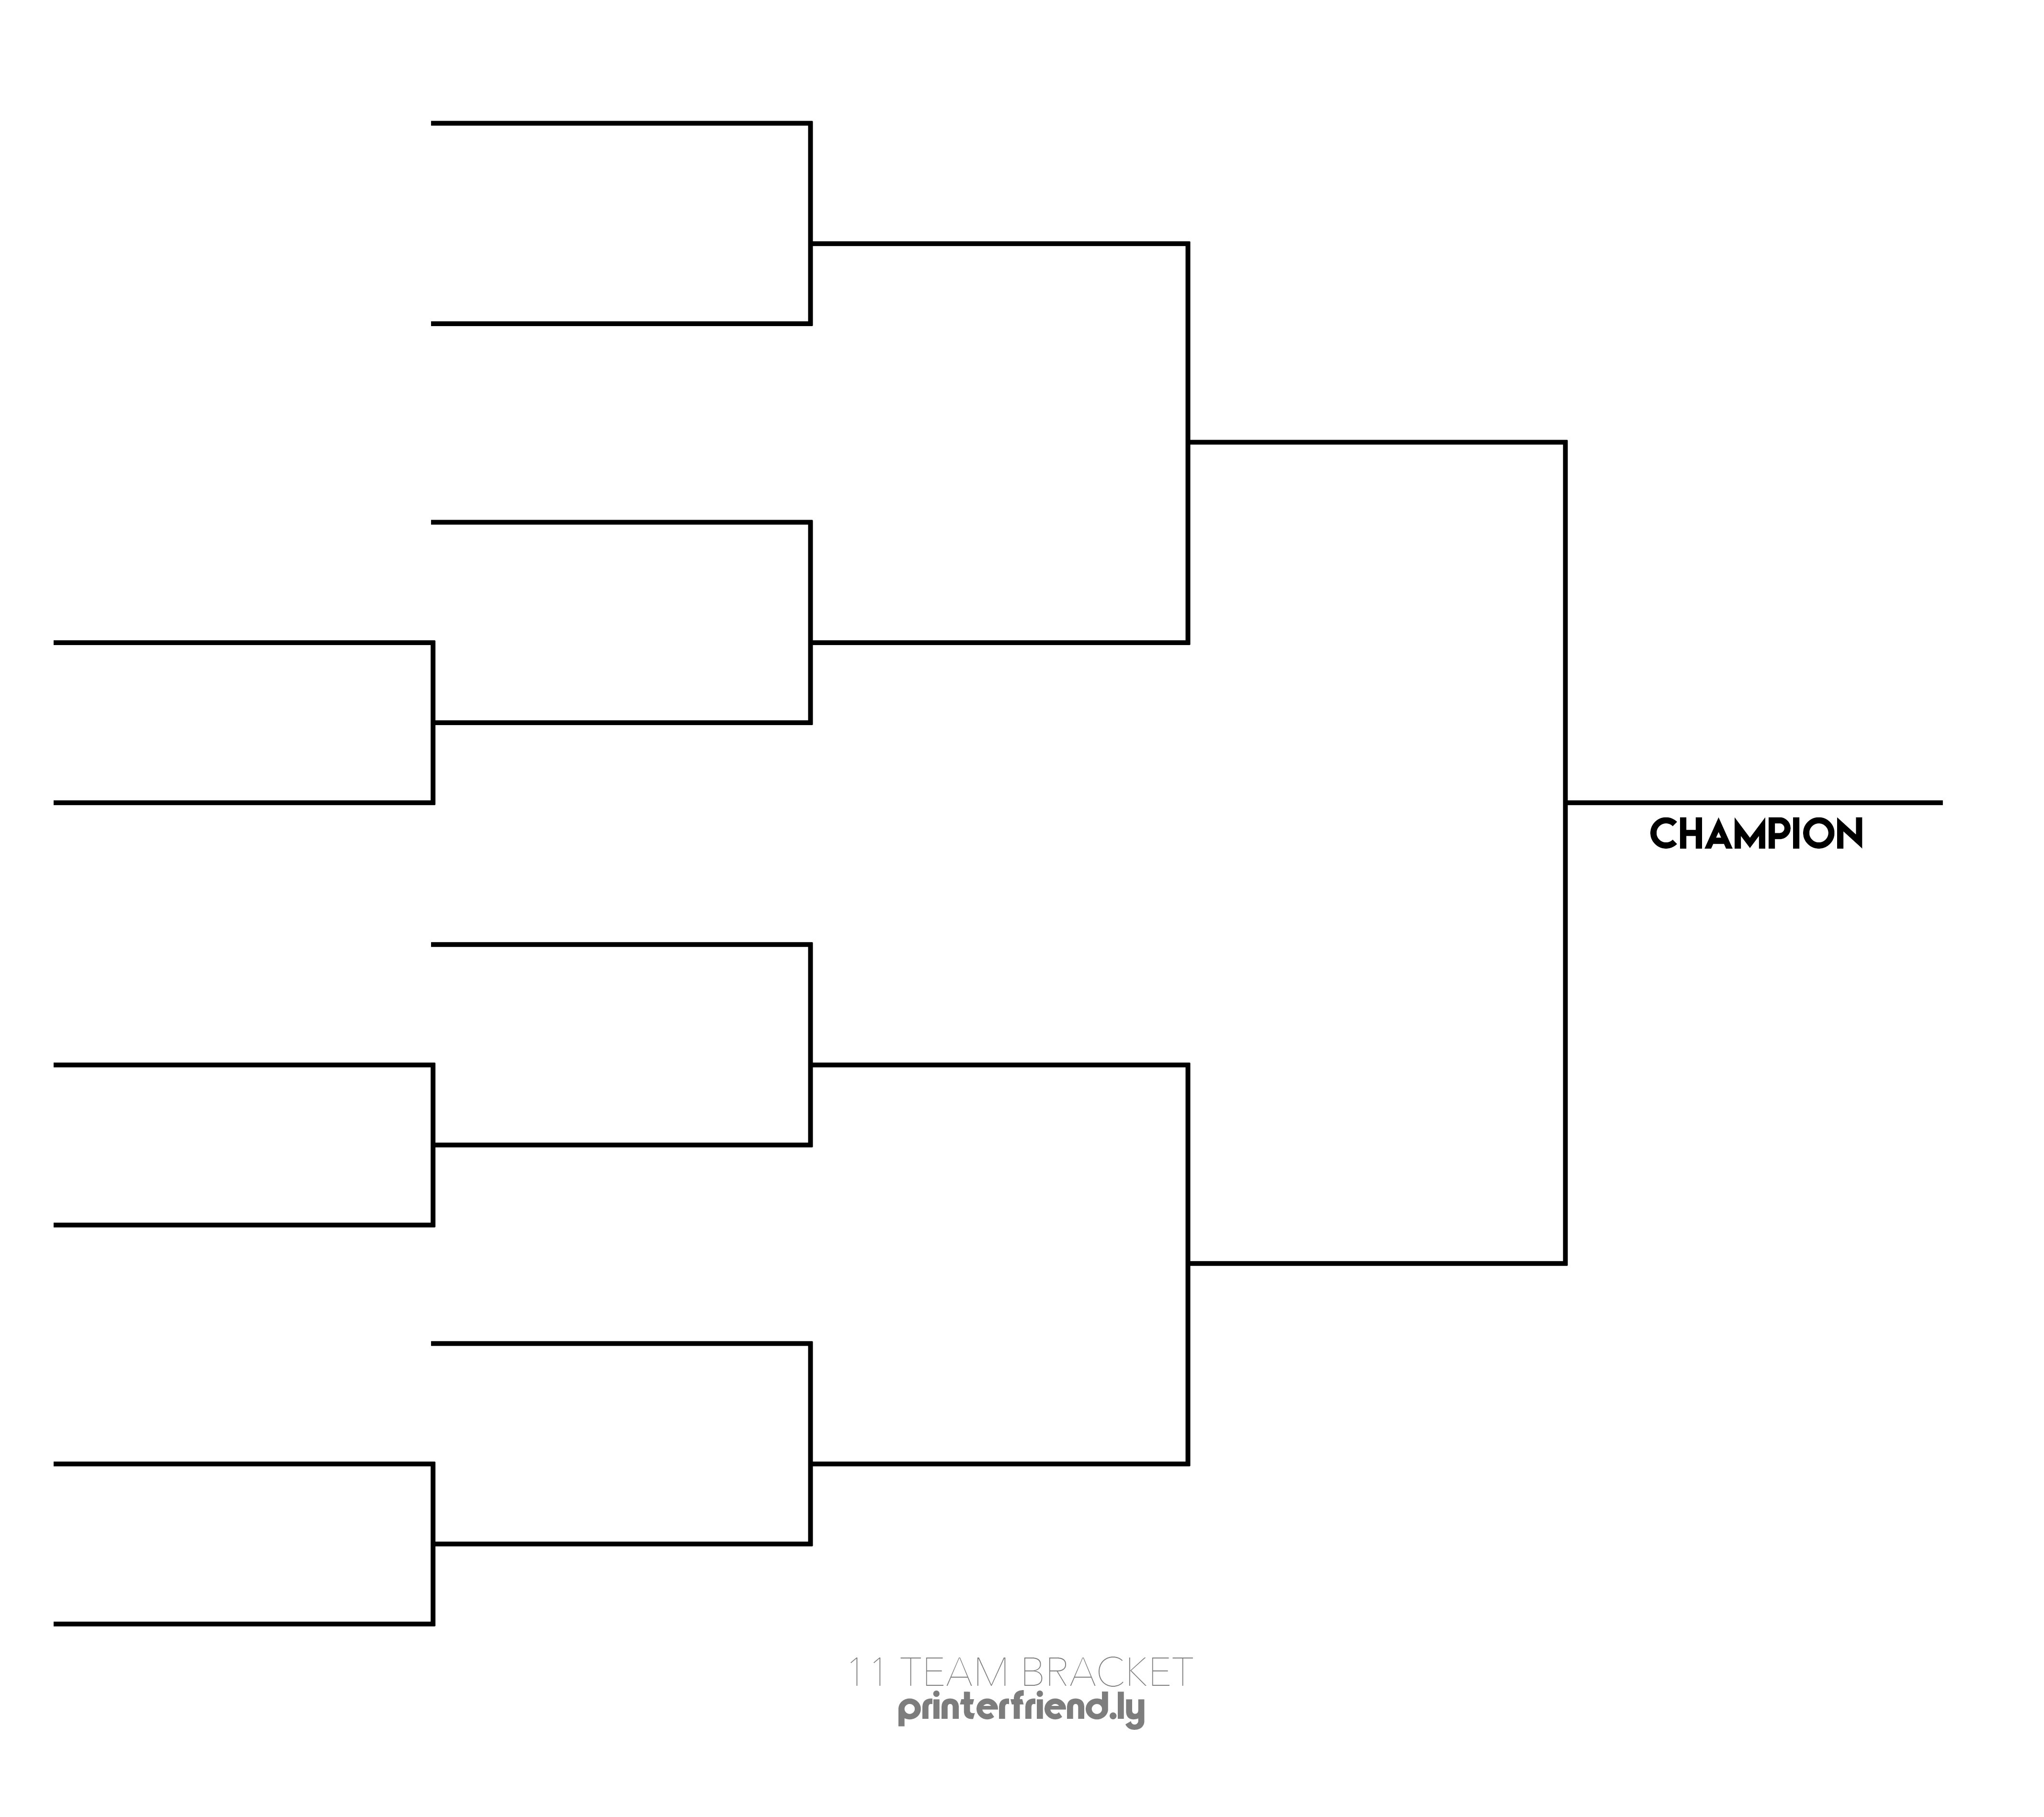 11 Team Printable Tournament Bracket - Printerfriendly - Free Printable Wrestling Brackets